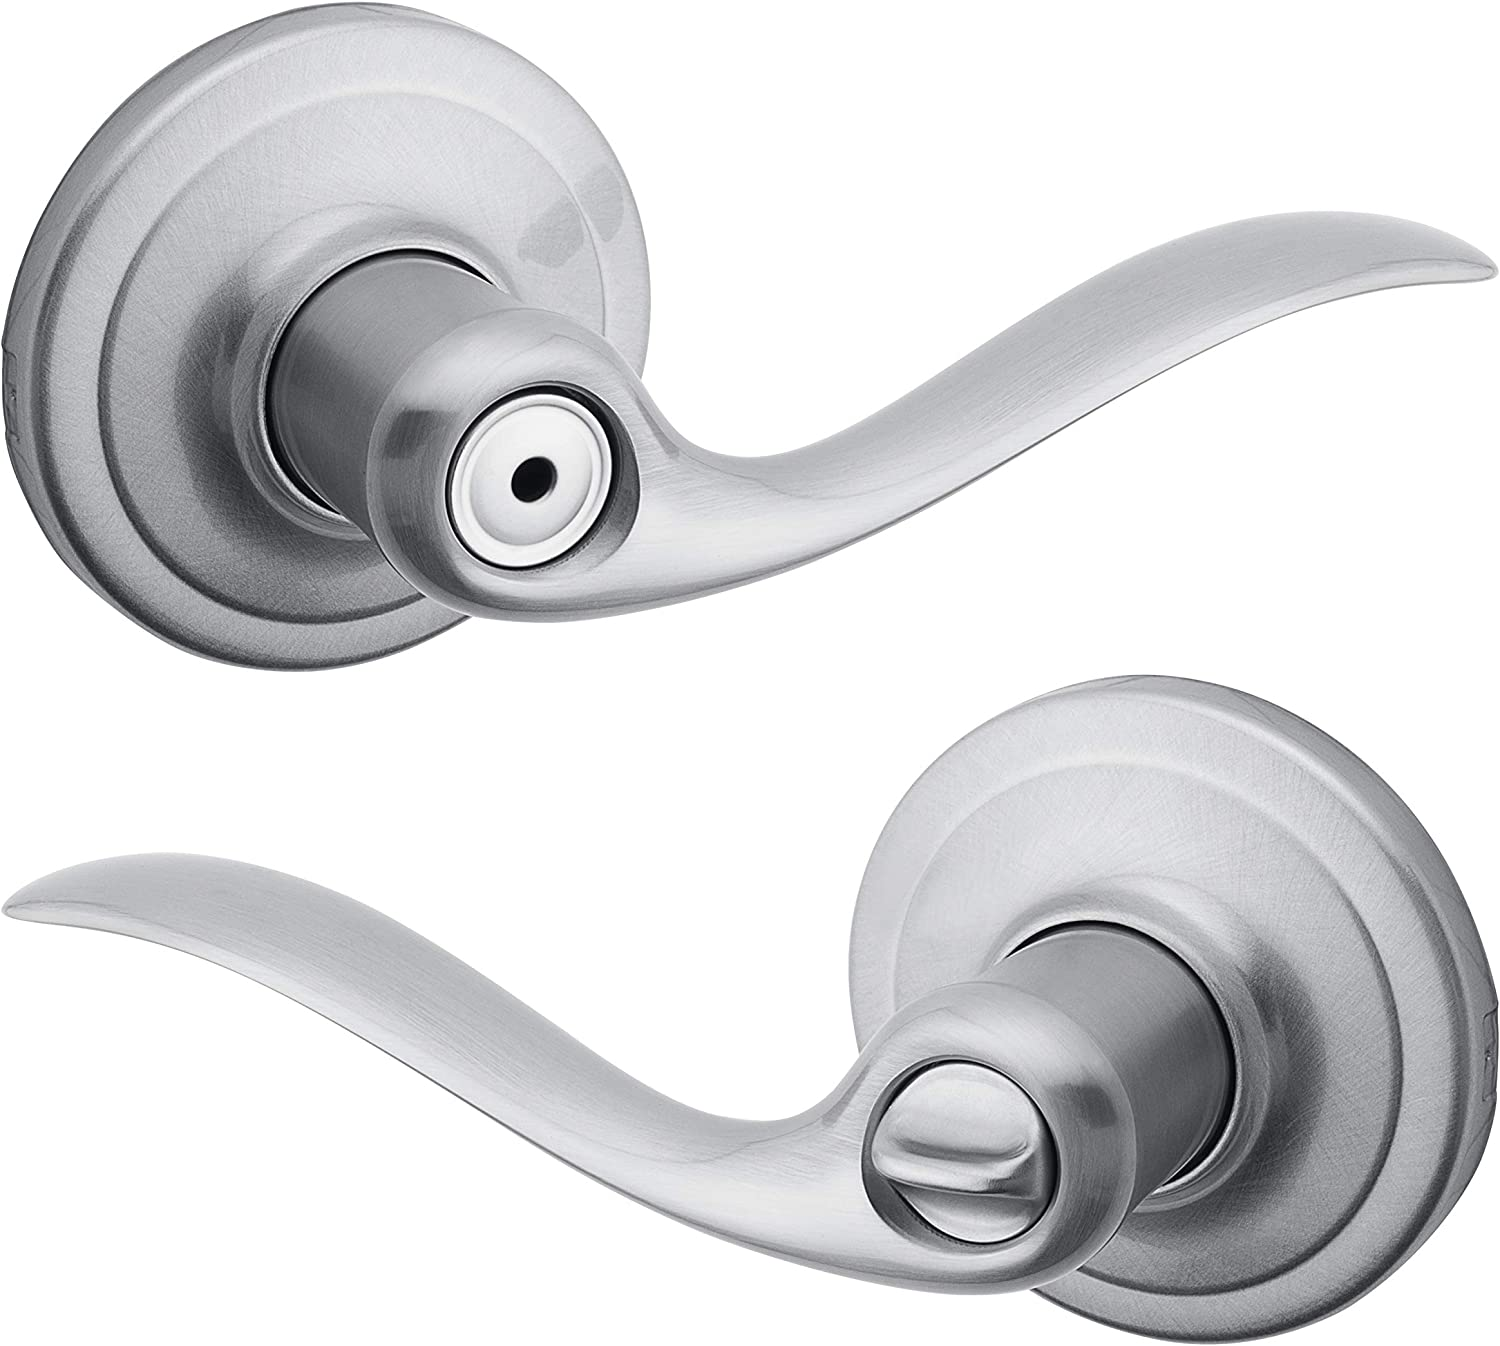 Kwikset Tustin Door Handle Lever Time sale Design with Traditional Wave fo High quality